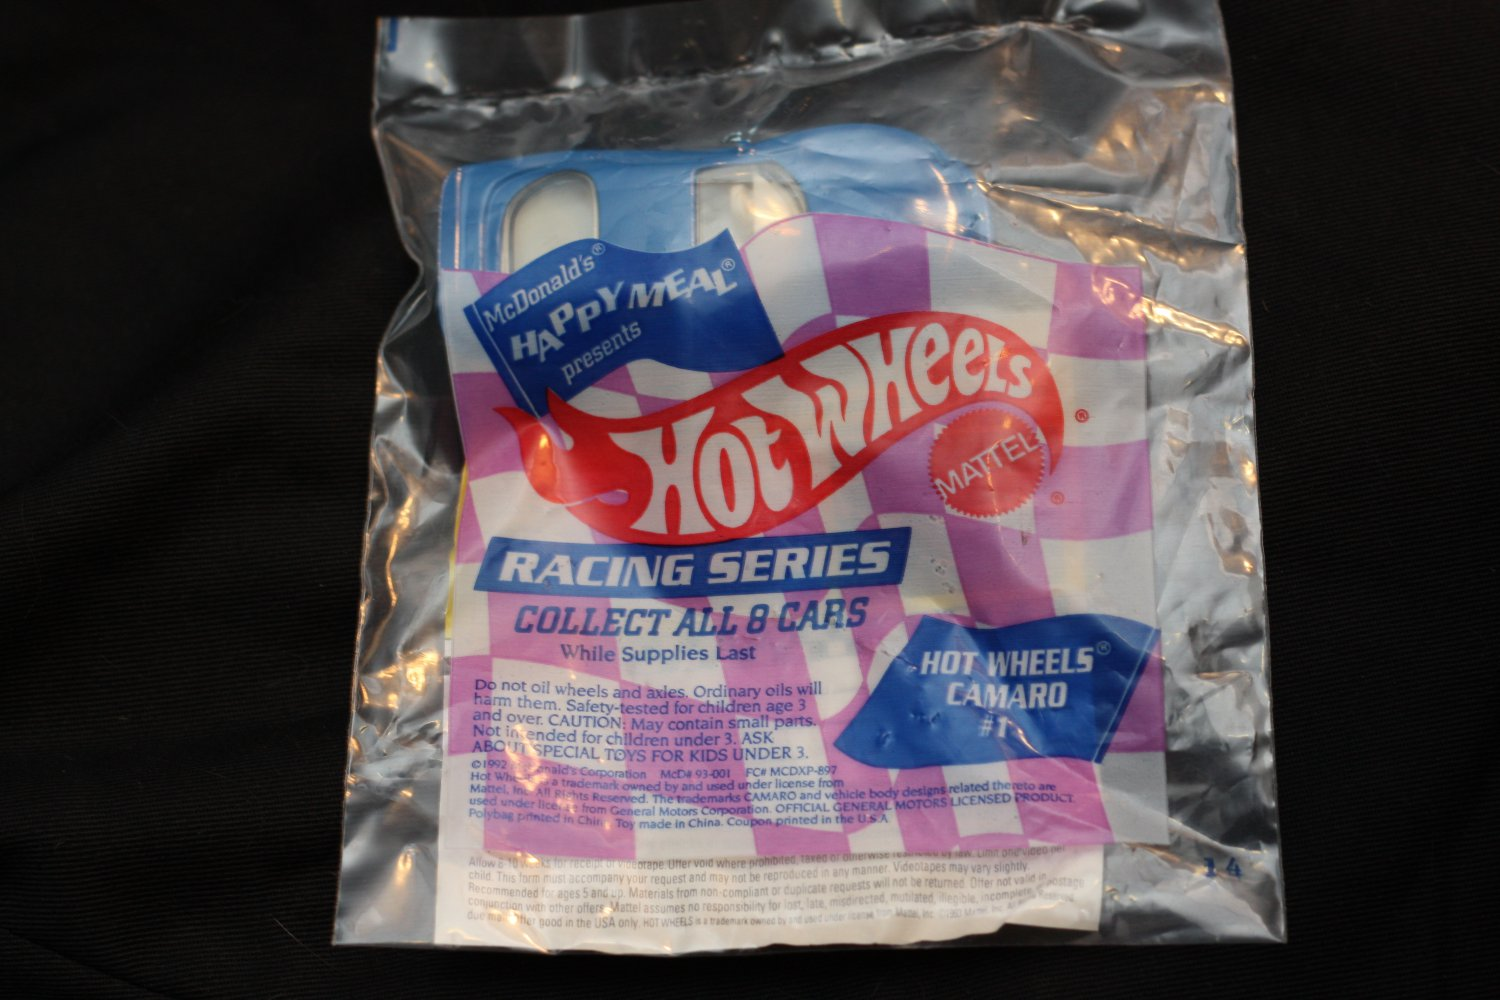 Hot Wheels 1993 McDonald's Happy Meal Series Hot Wheels Camaro #1 (blue/white)